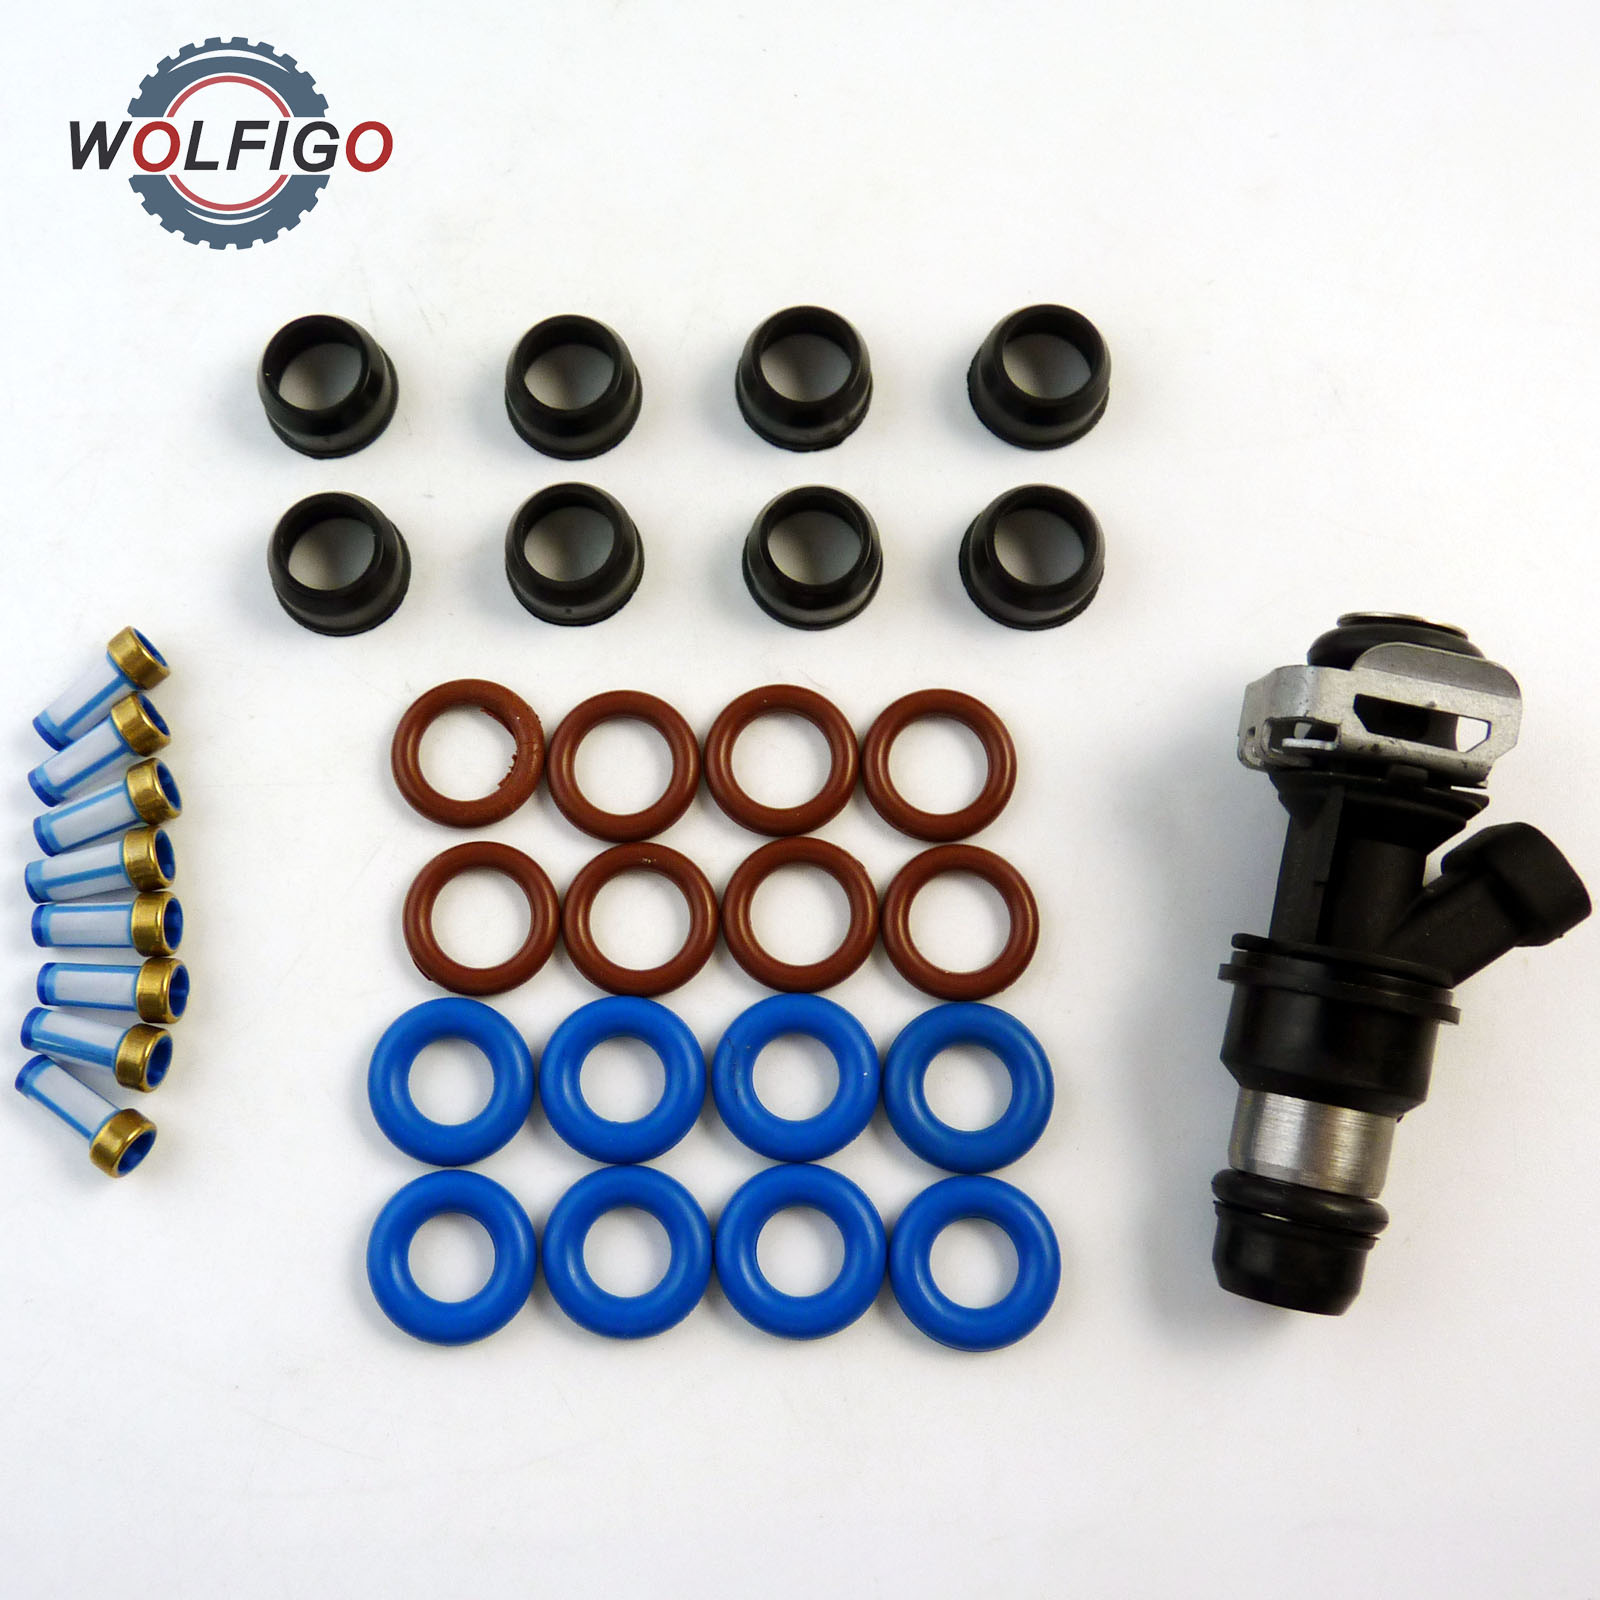 small resolution of wolfigo fuel injector rebuild kit o rings filters 25317628 17113553 8171136980 for chevrolet truck pintle v8 chevy gmc 4 8 in fuel inject